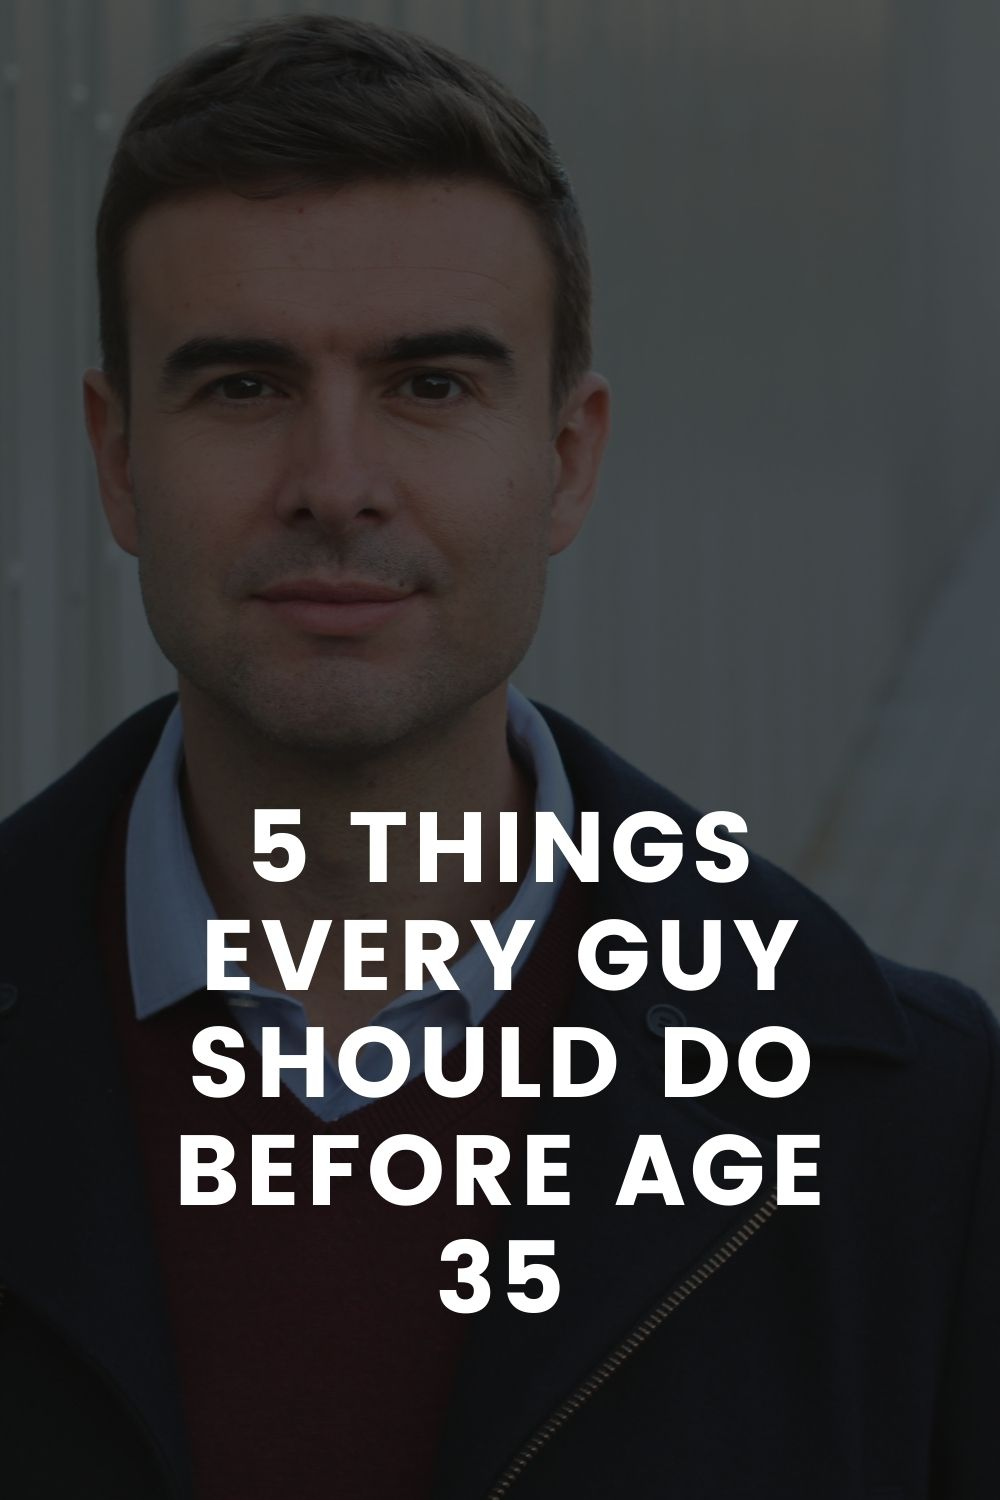 5 Things Every Guy Should Do Before Age 35